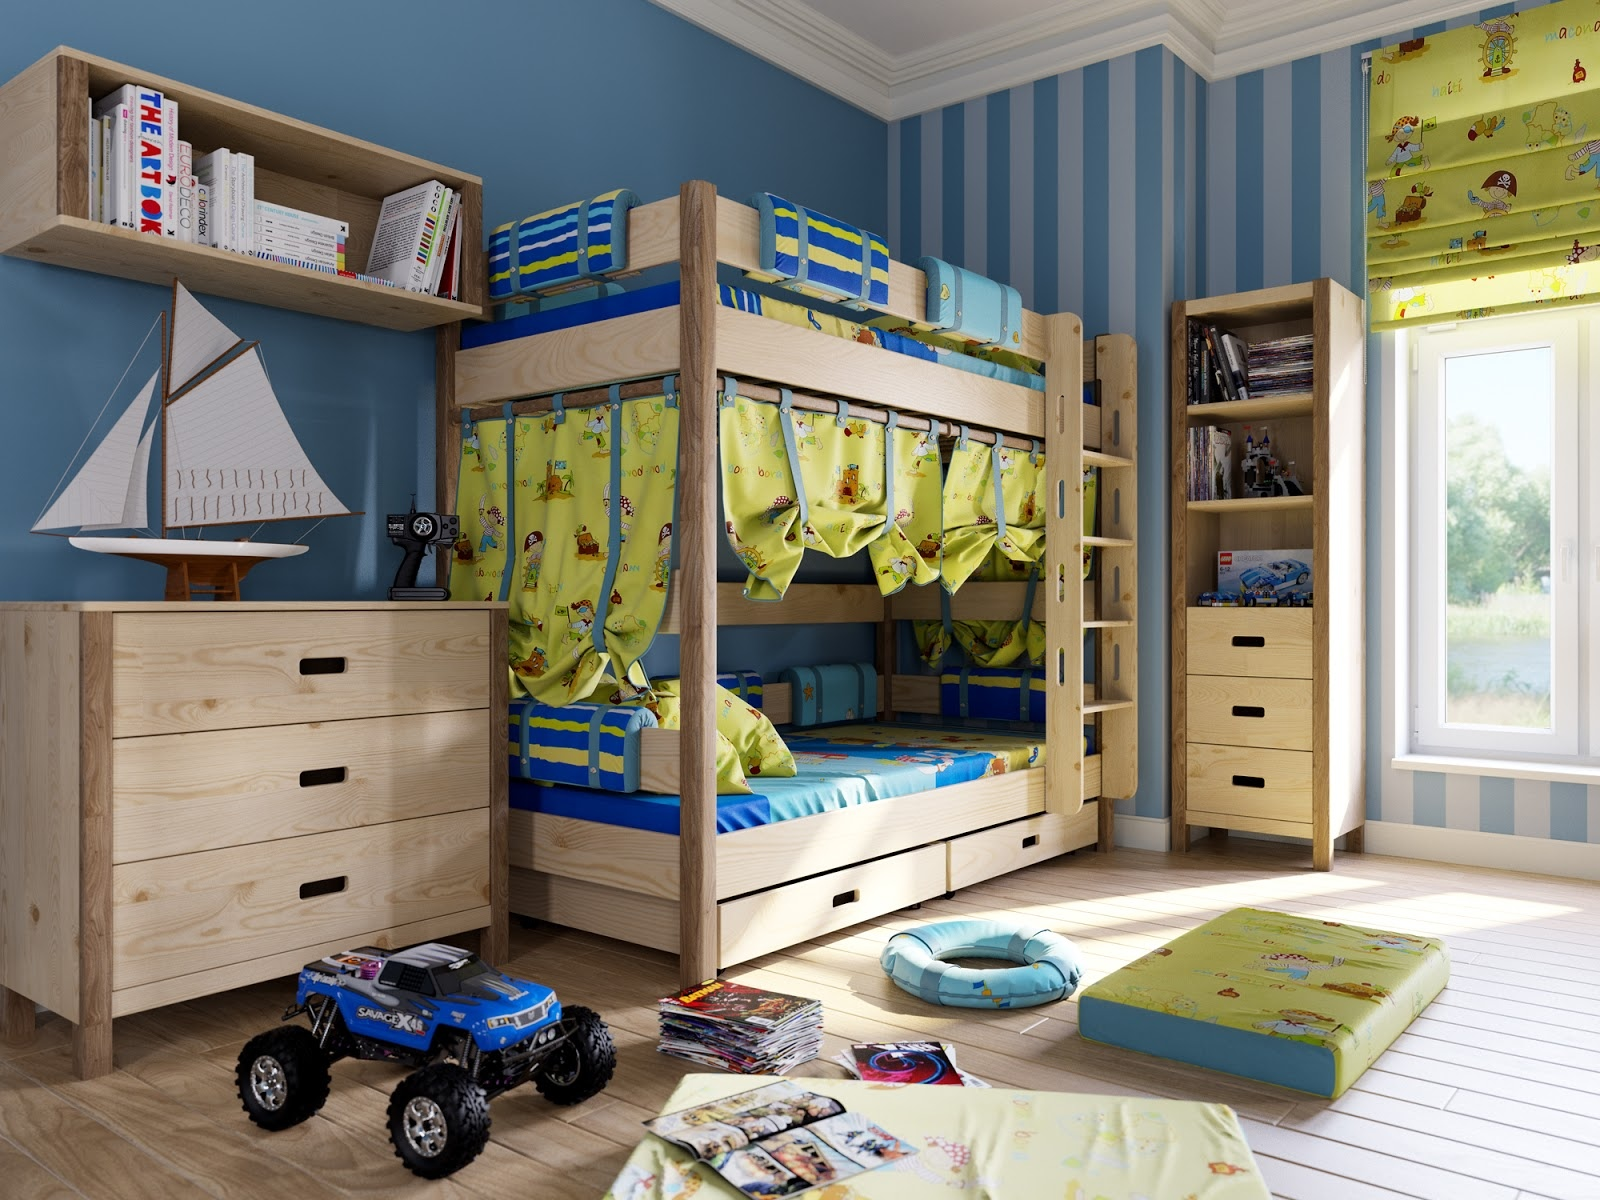 Child Bedroom Decor 39-childrens-room-decor (1600×1200) | children's bedrooms